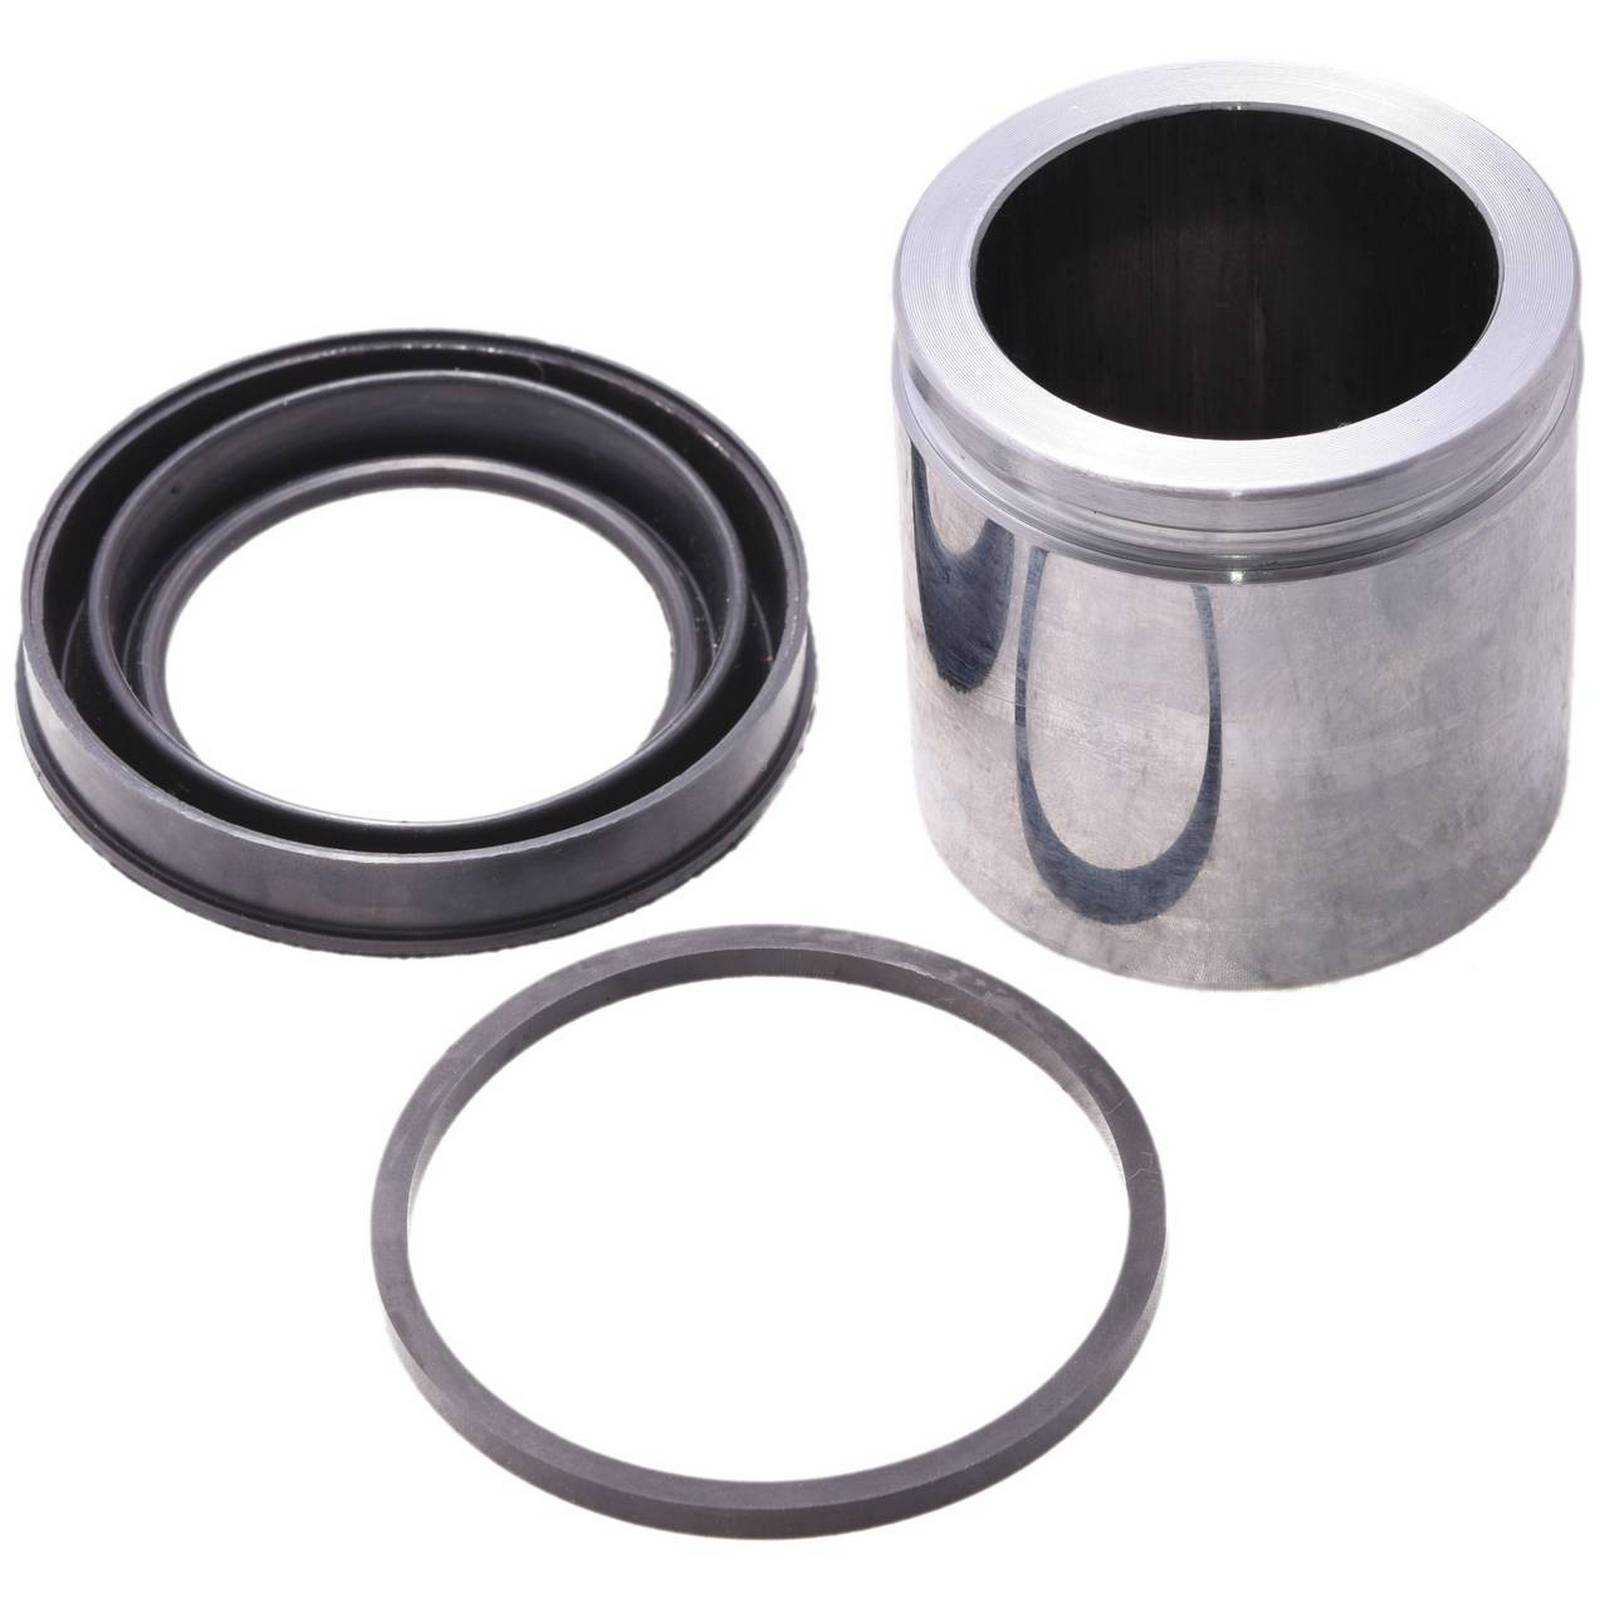 Details about CYLINDER PISTON REPAIR KIT (FRONT) FOR FORD F250 2004- OEM:  AL3Z-2B120-B